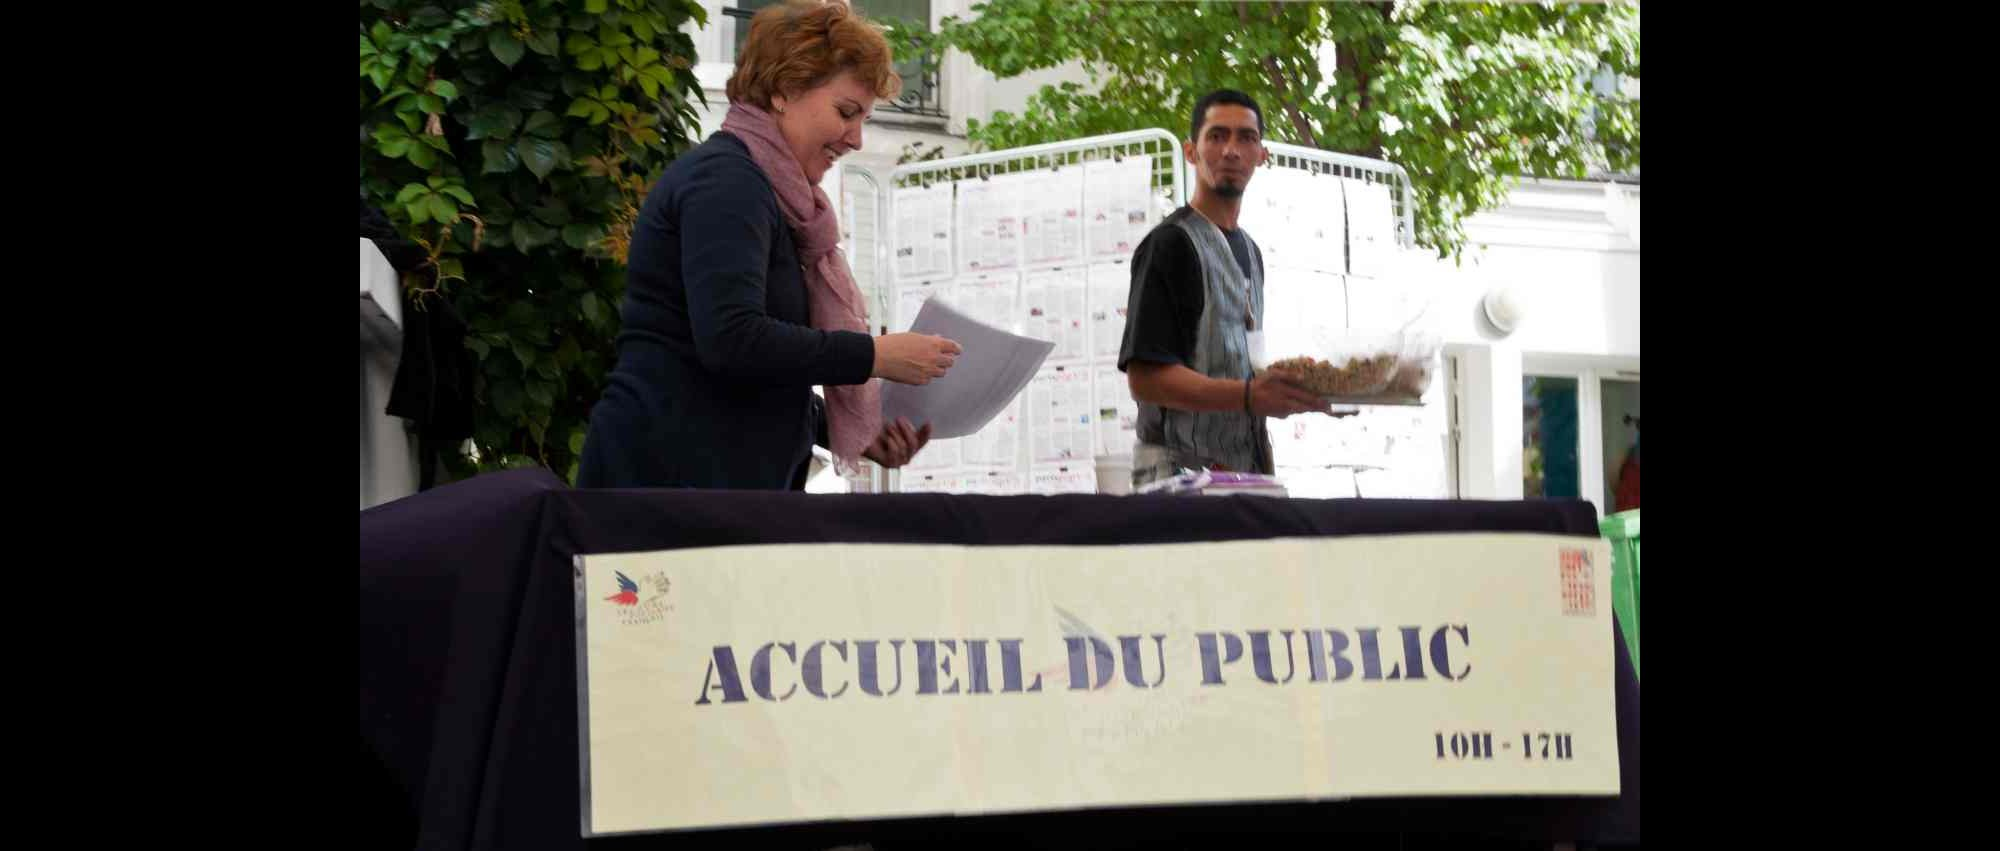 A l'accueil : Laurence